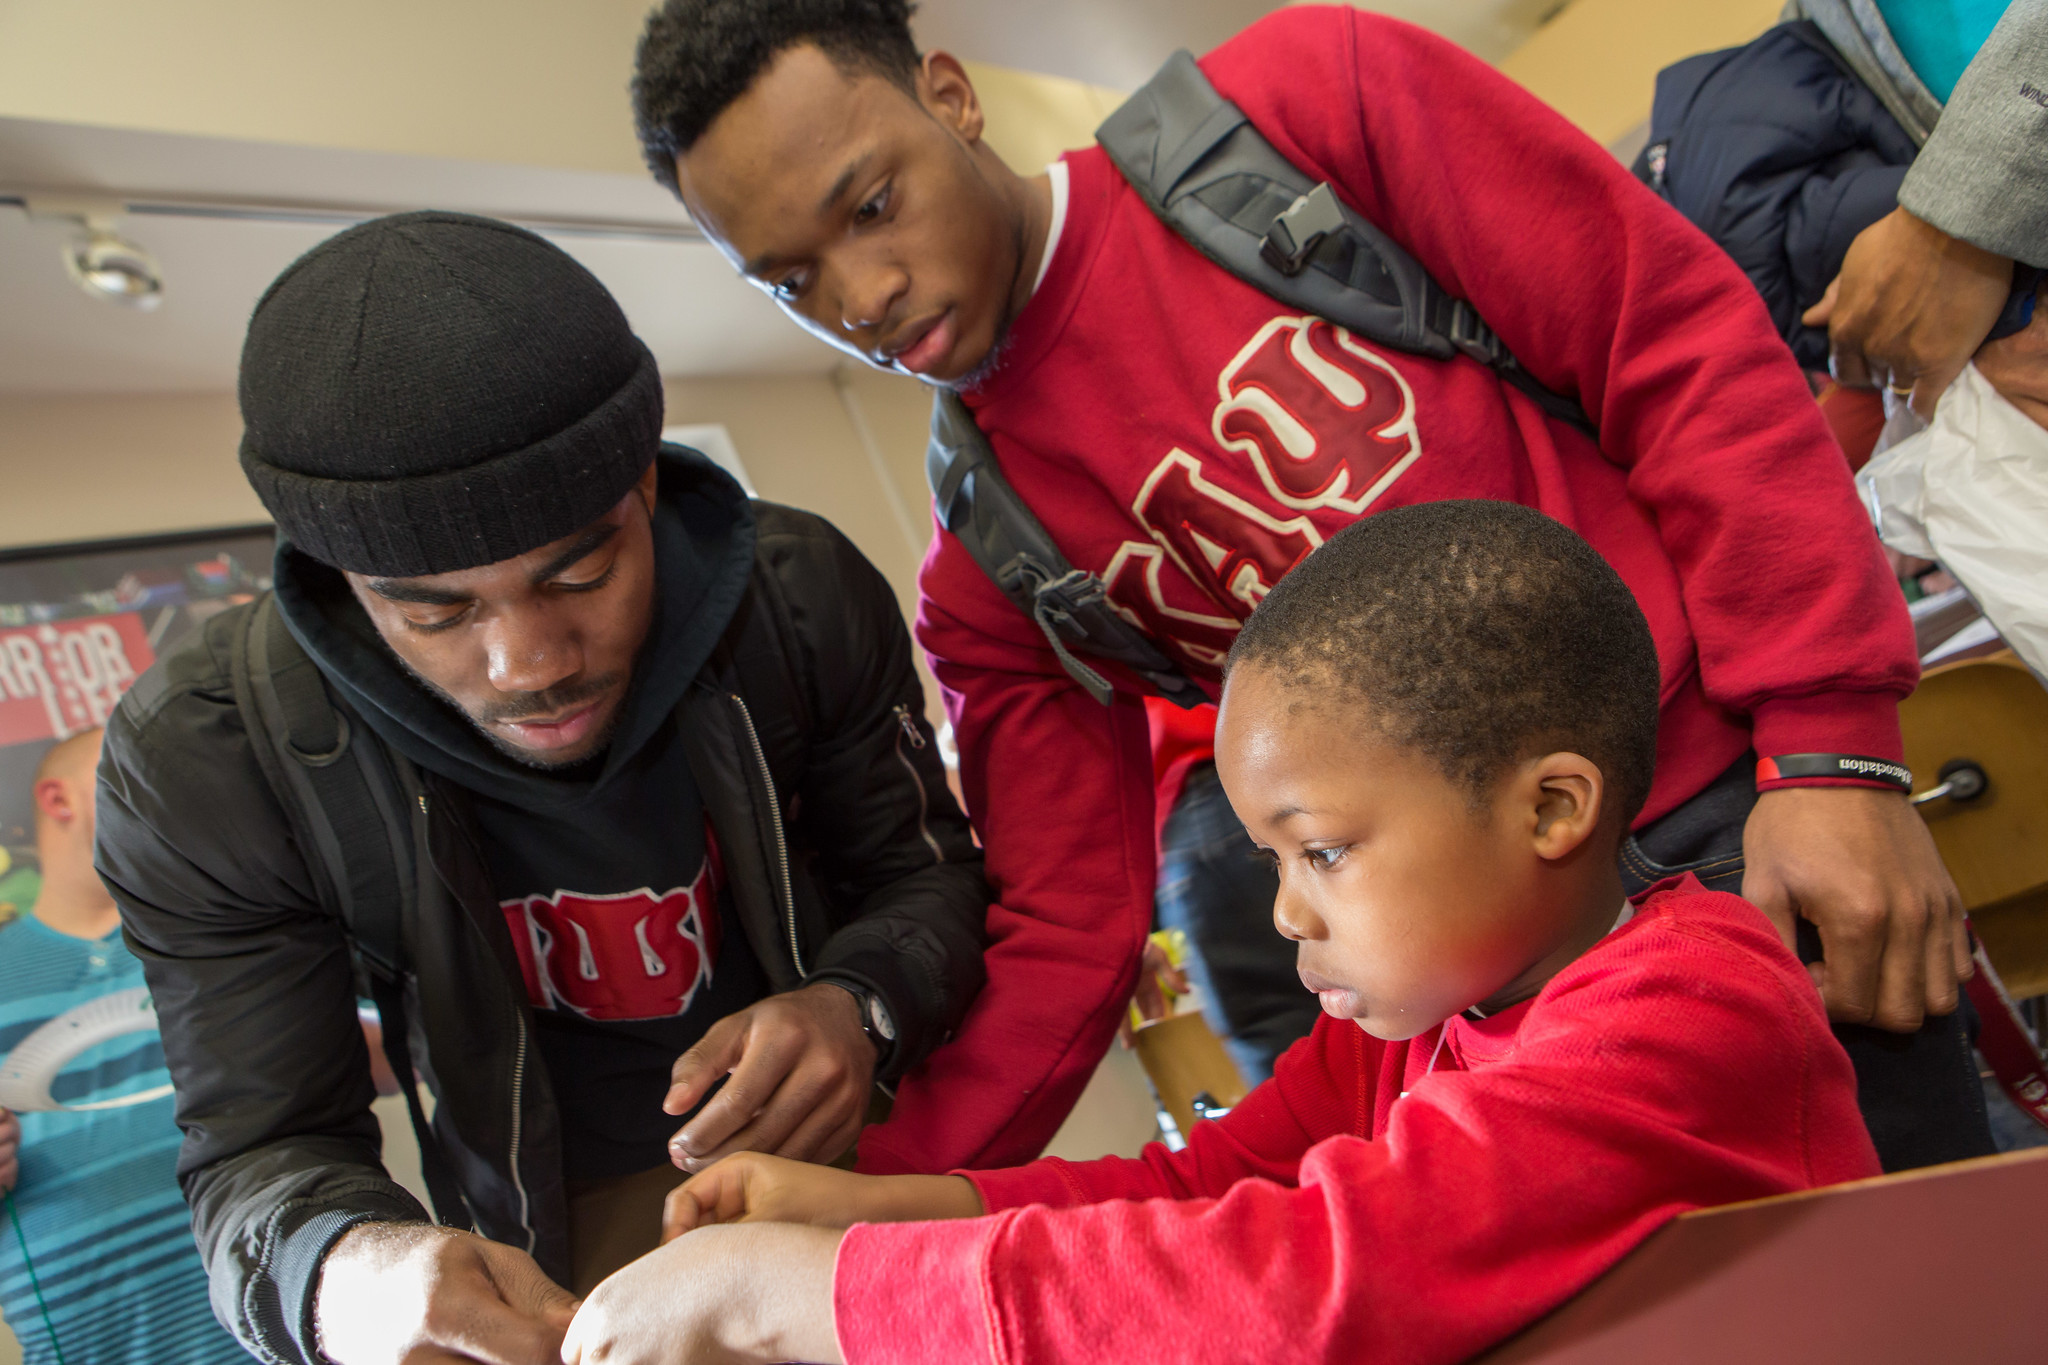 Two ESU fraternity students helping an young child